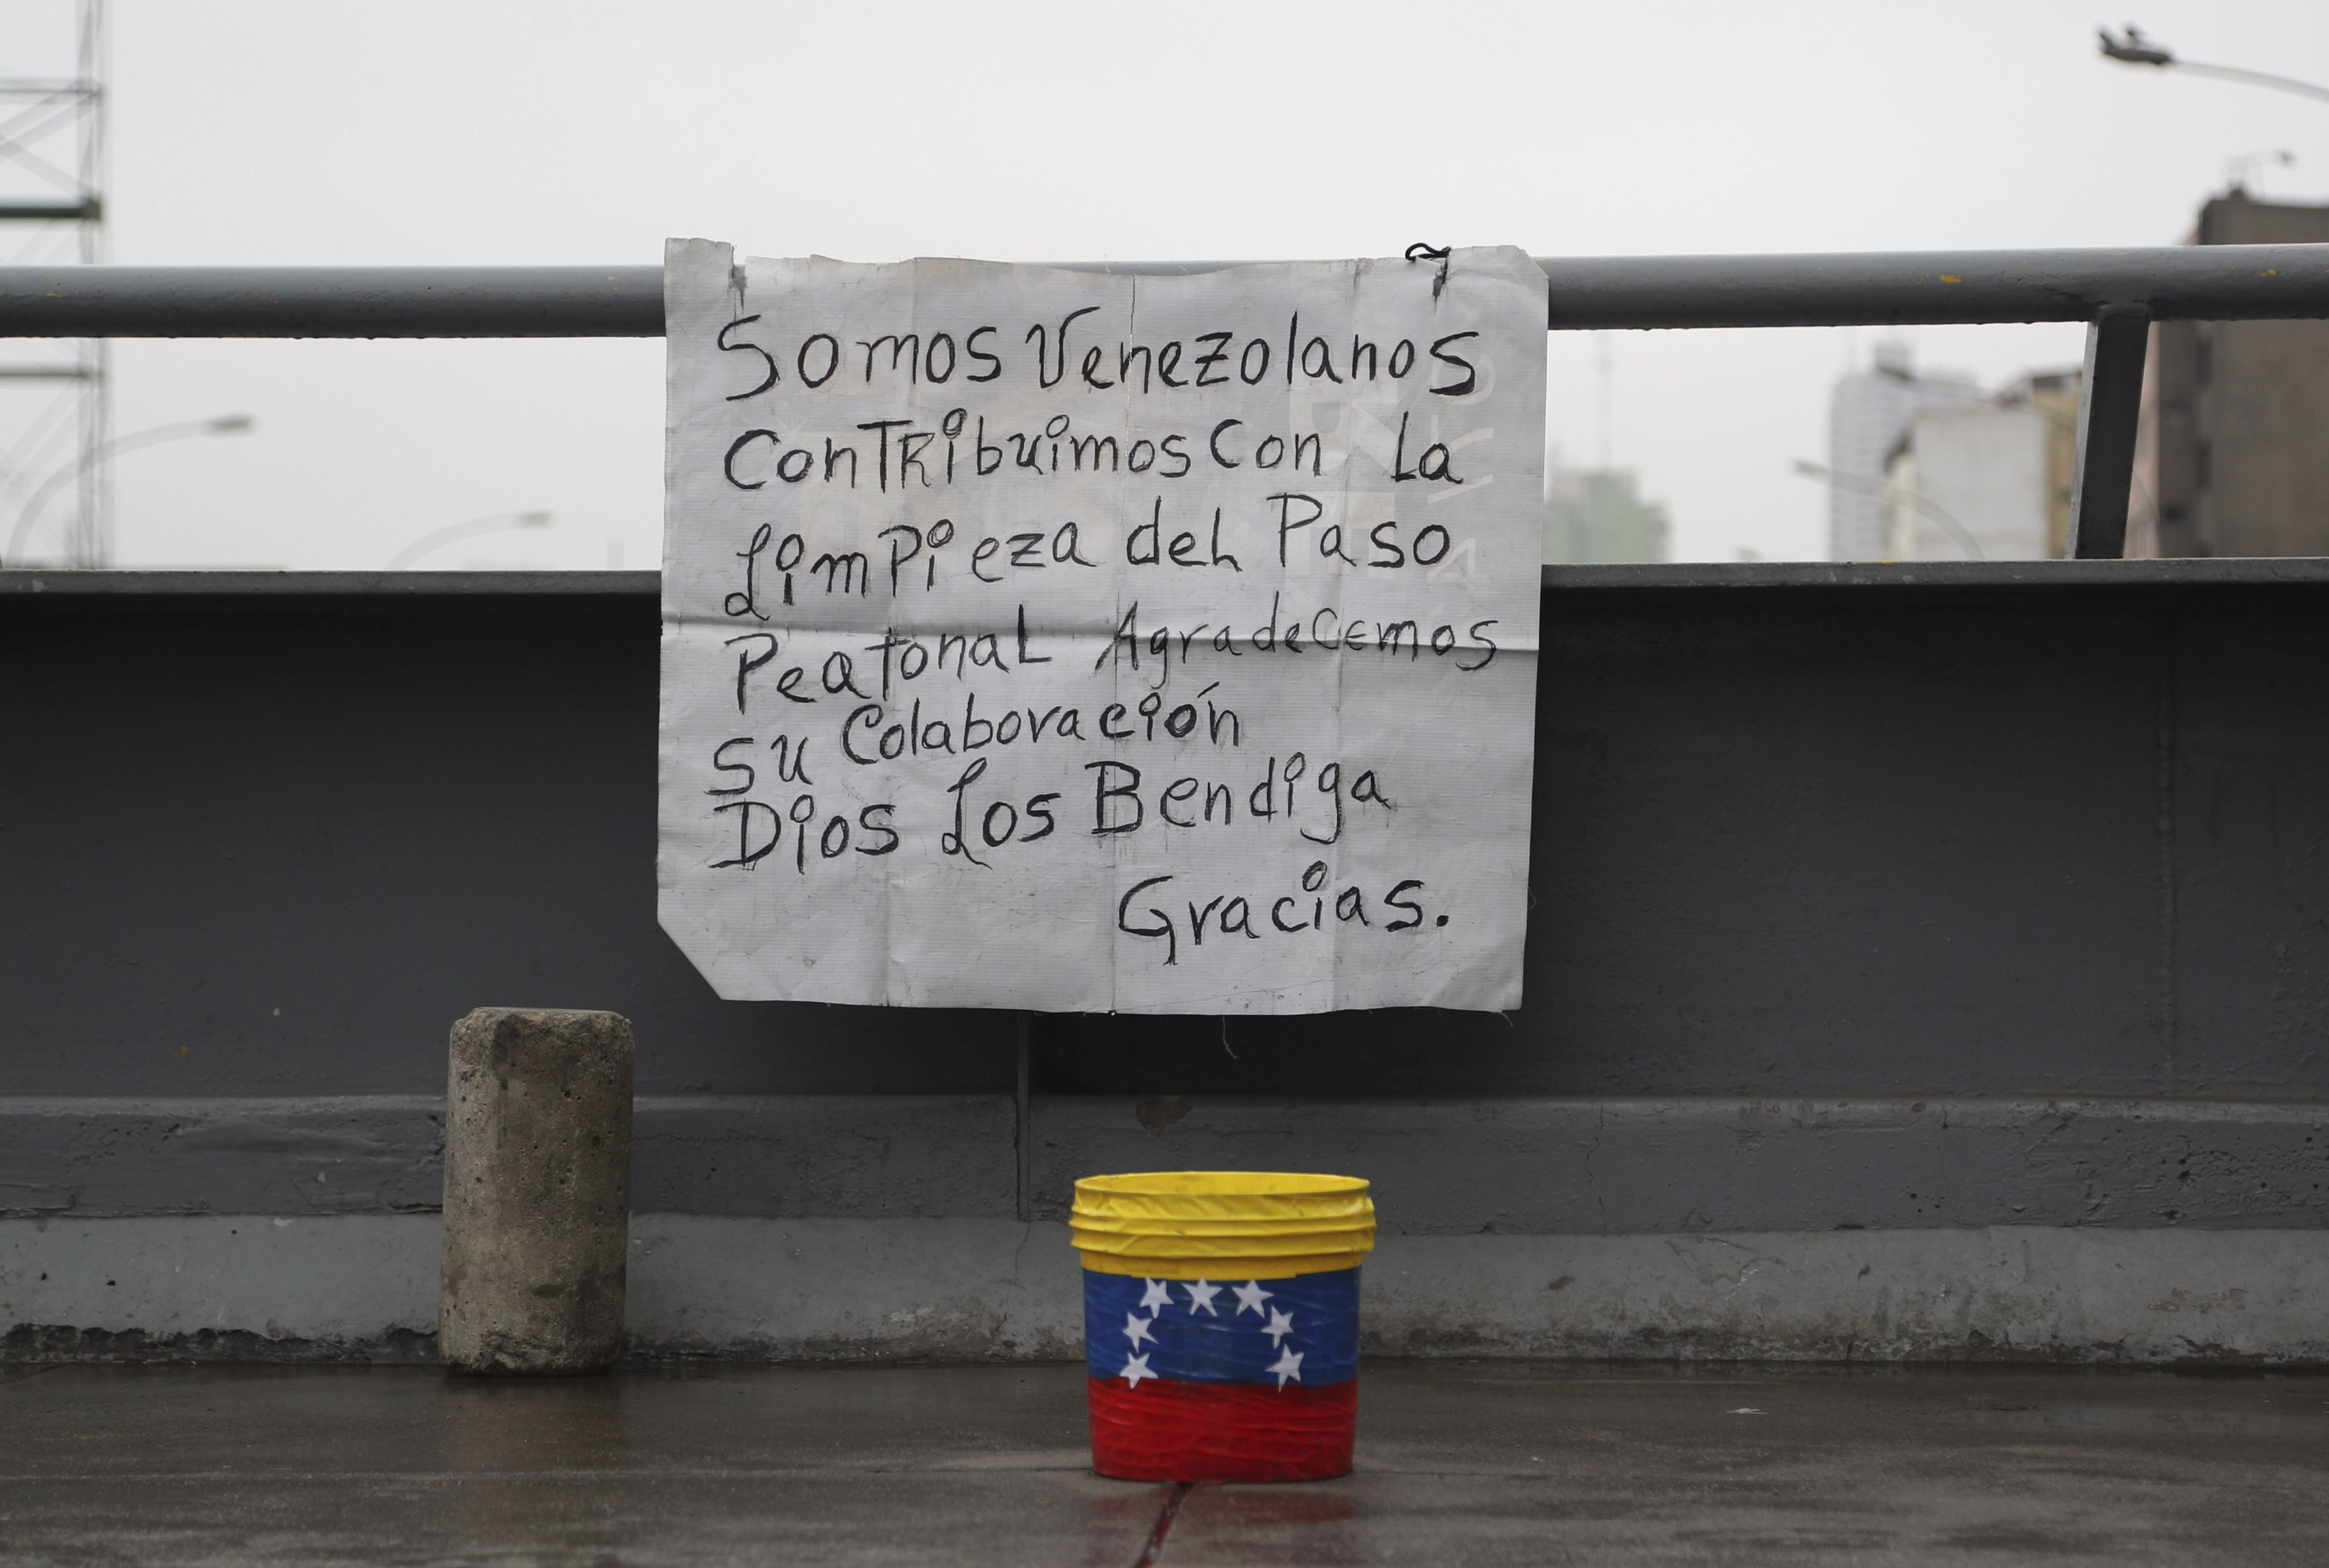 "In this Oct. 8, 201 photo, a sign asking for money in exchange for keeping a bridge clean hangs in Lima, Peru. The sign reads in Spanish ""We are Venezuelans. We contribute to the cleaning of this pedestrian pass. We appreciate your collaboration. May God bless you. Thank you."" (AP Photo/Martin Mejia)"